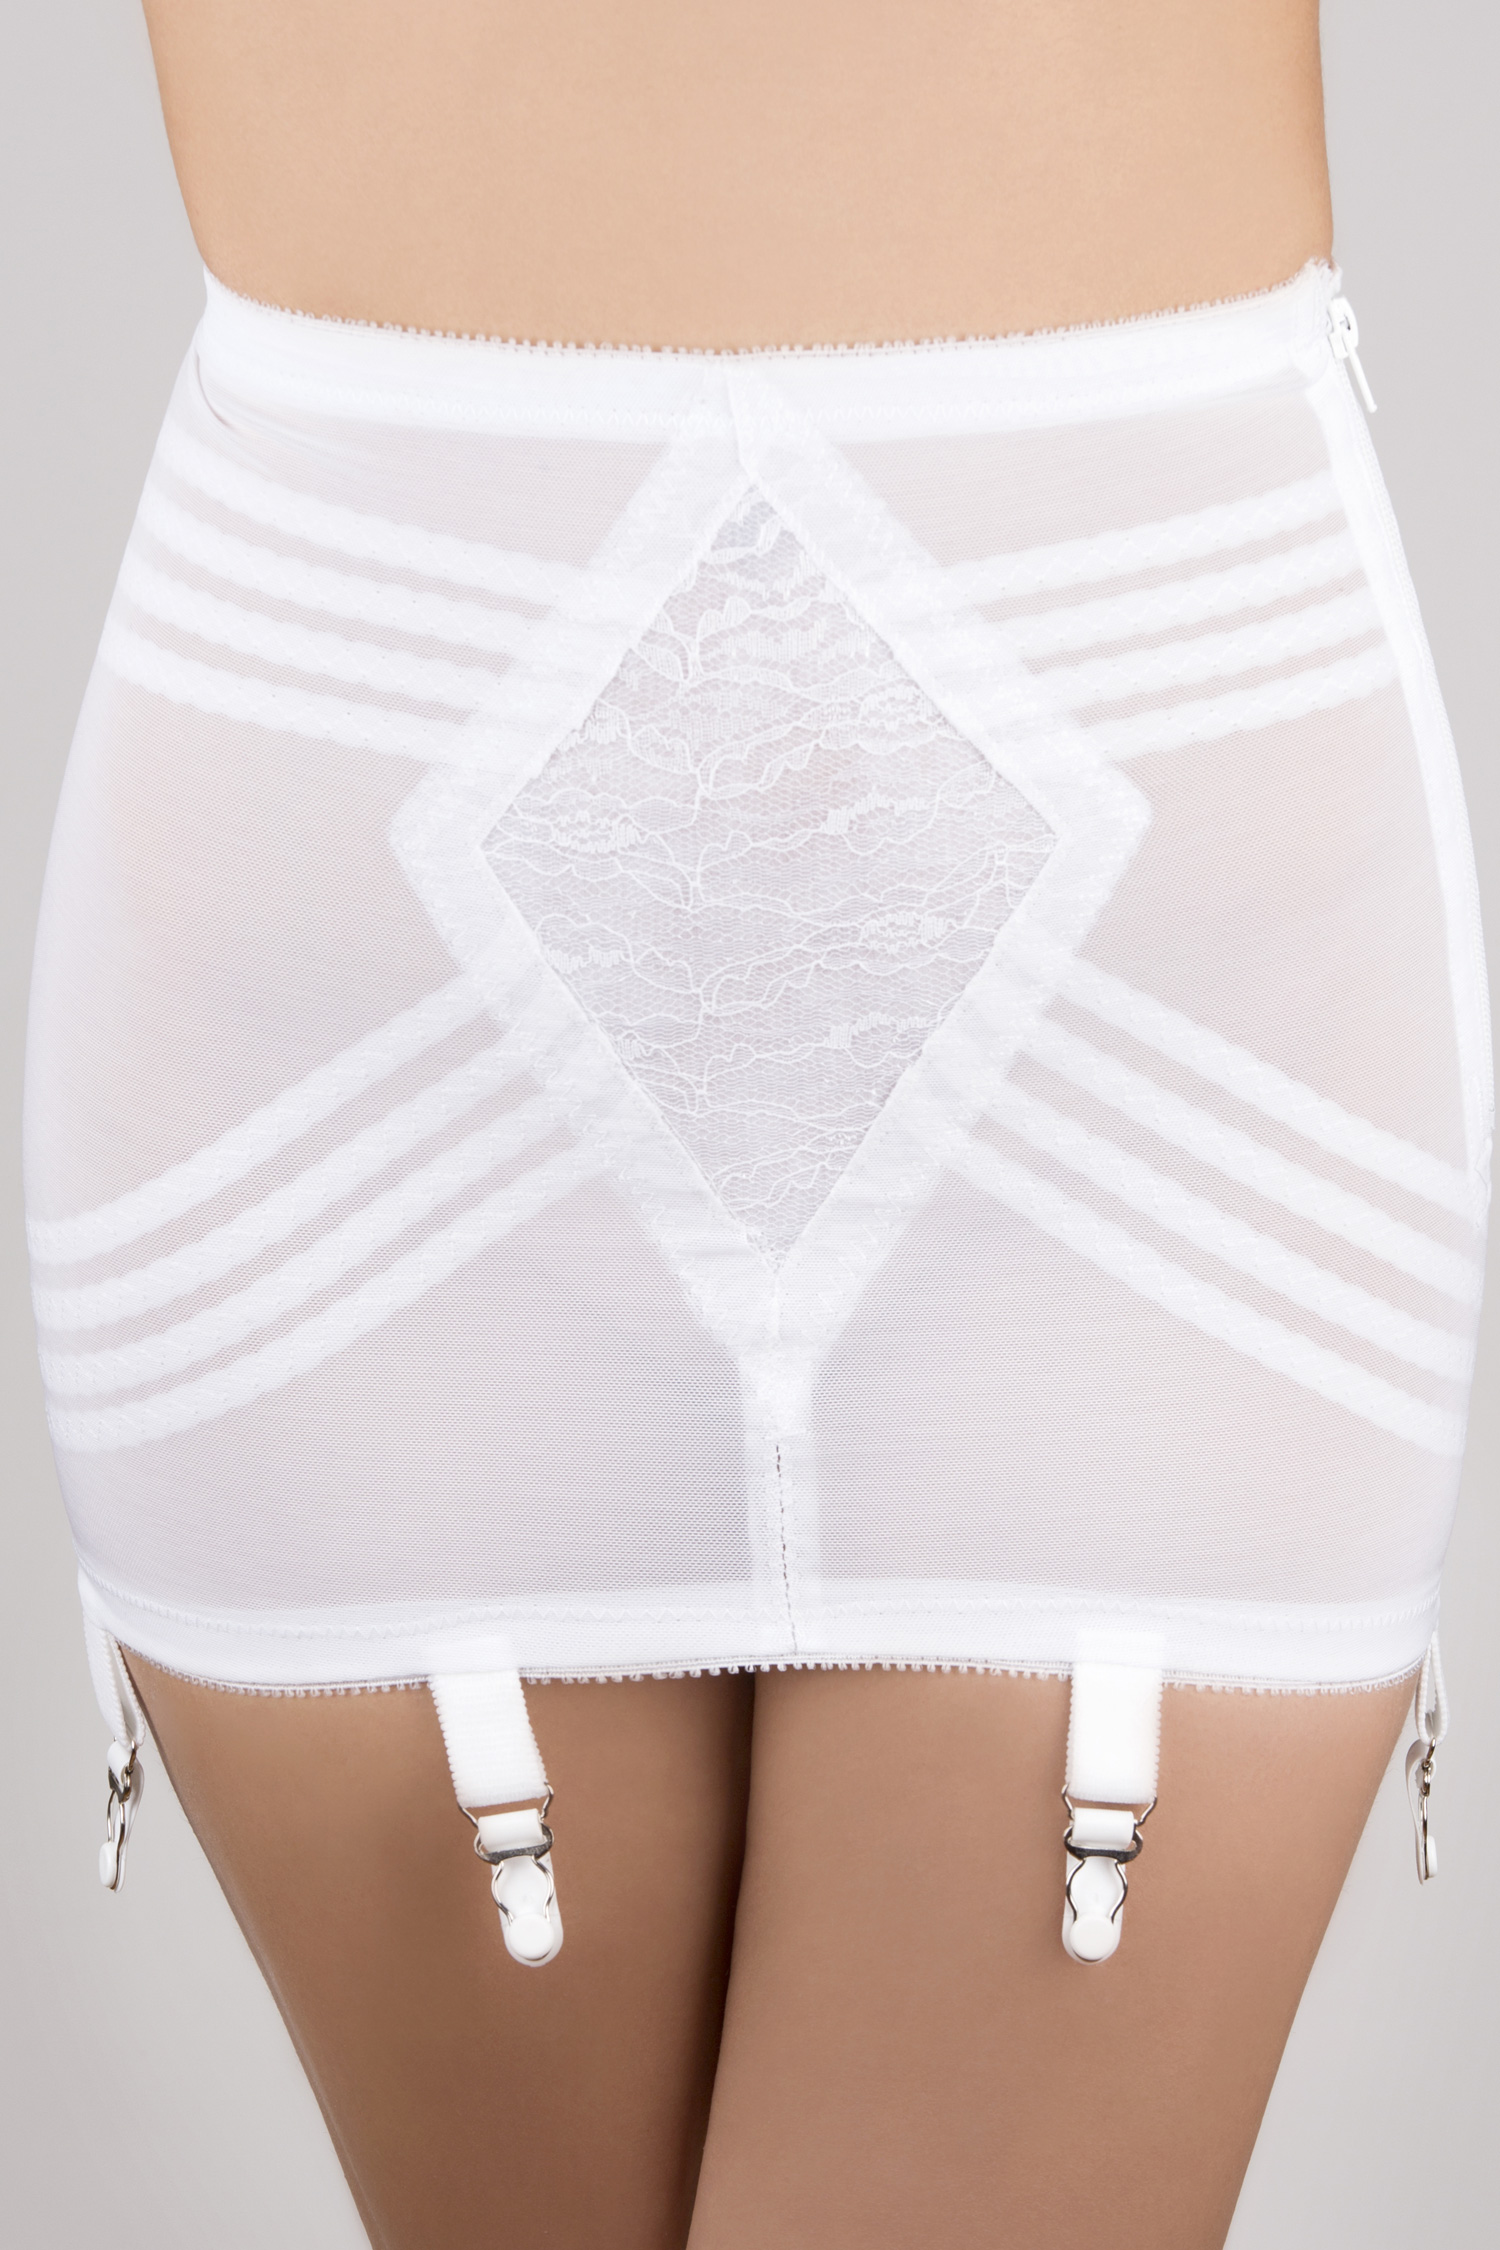 Rago Open Bottom Girdle Firm Shaping White - 4X 1361